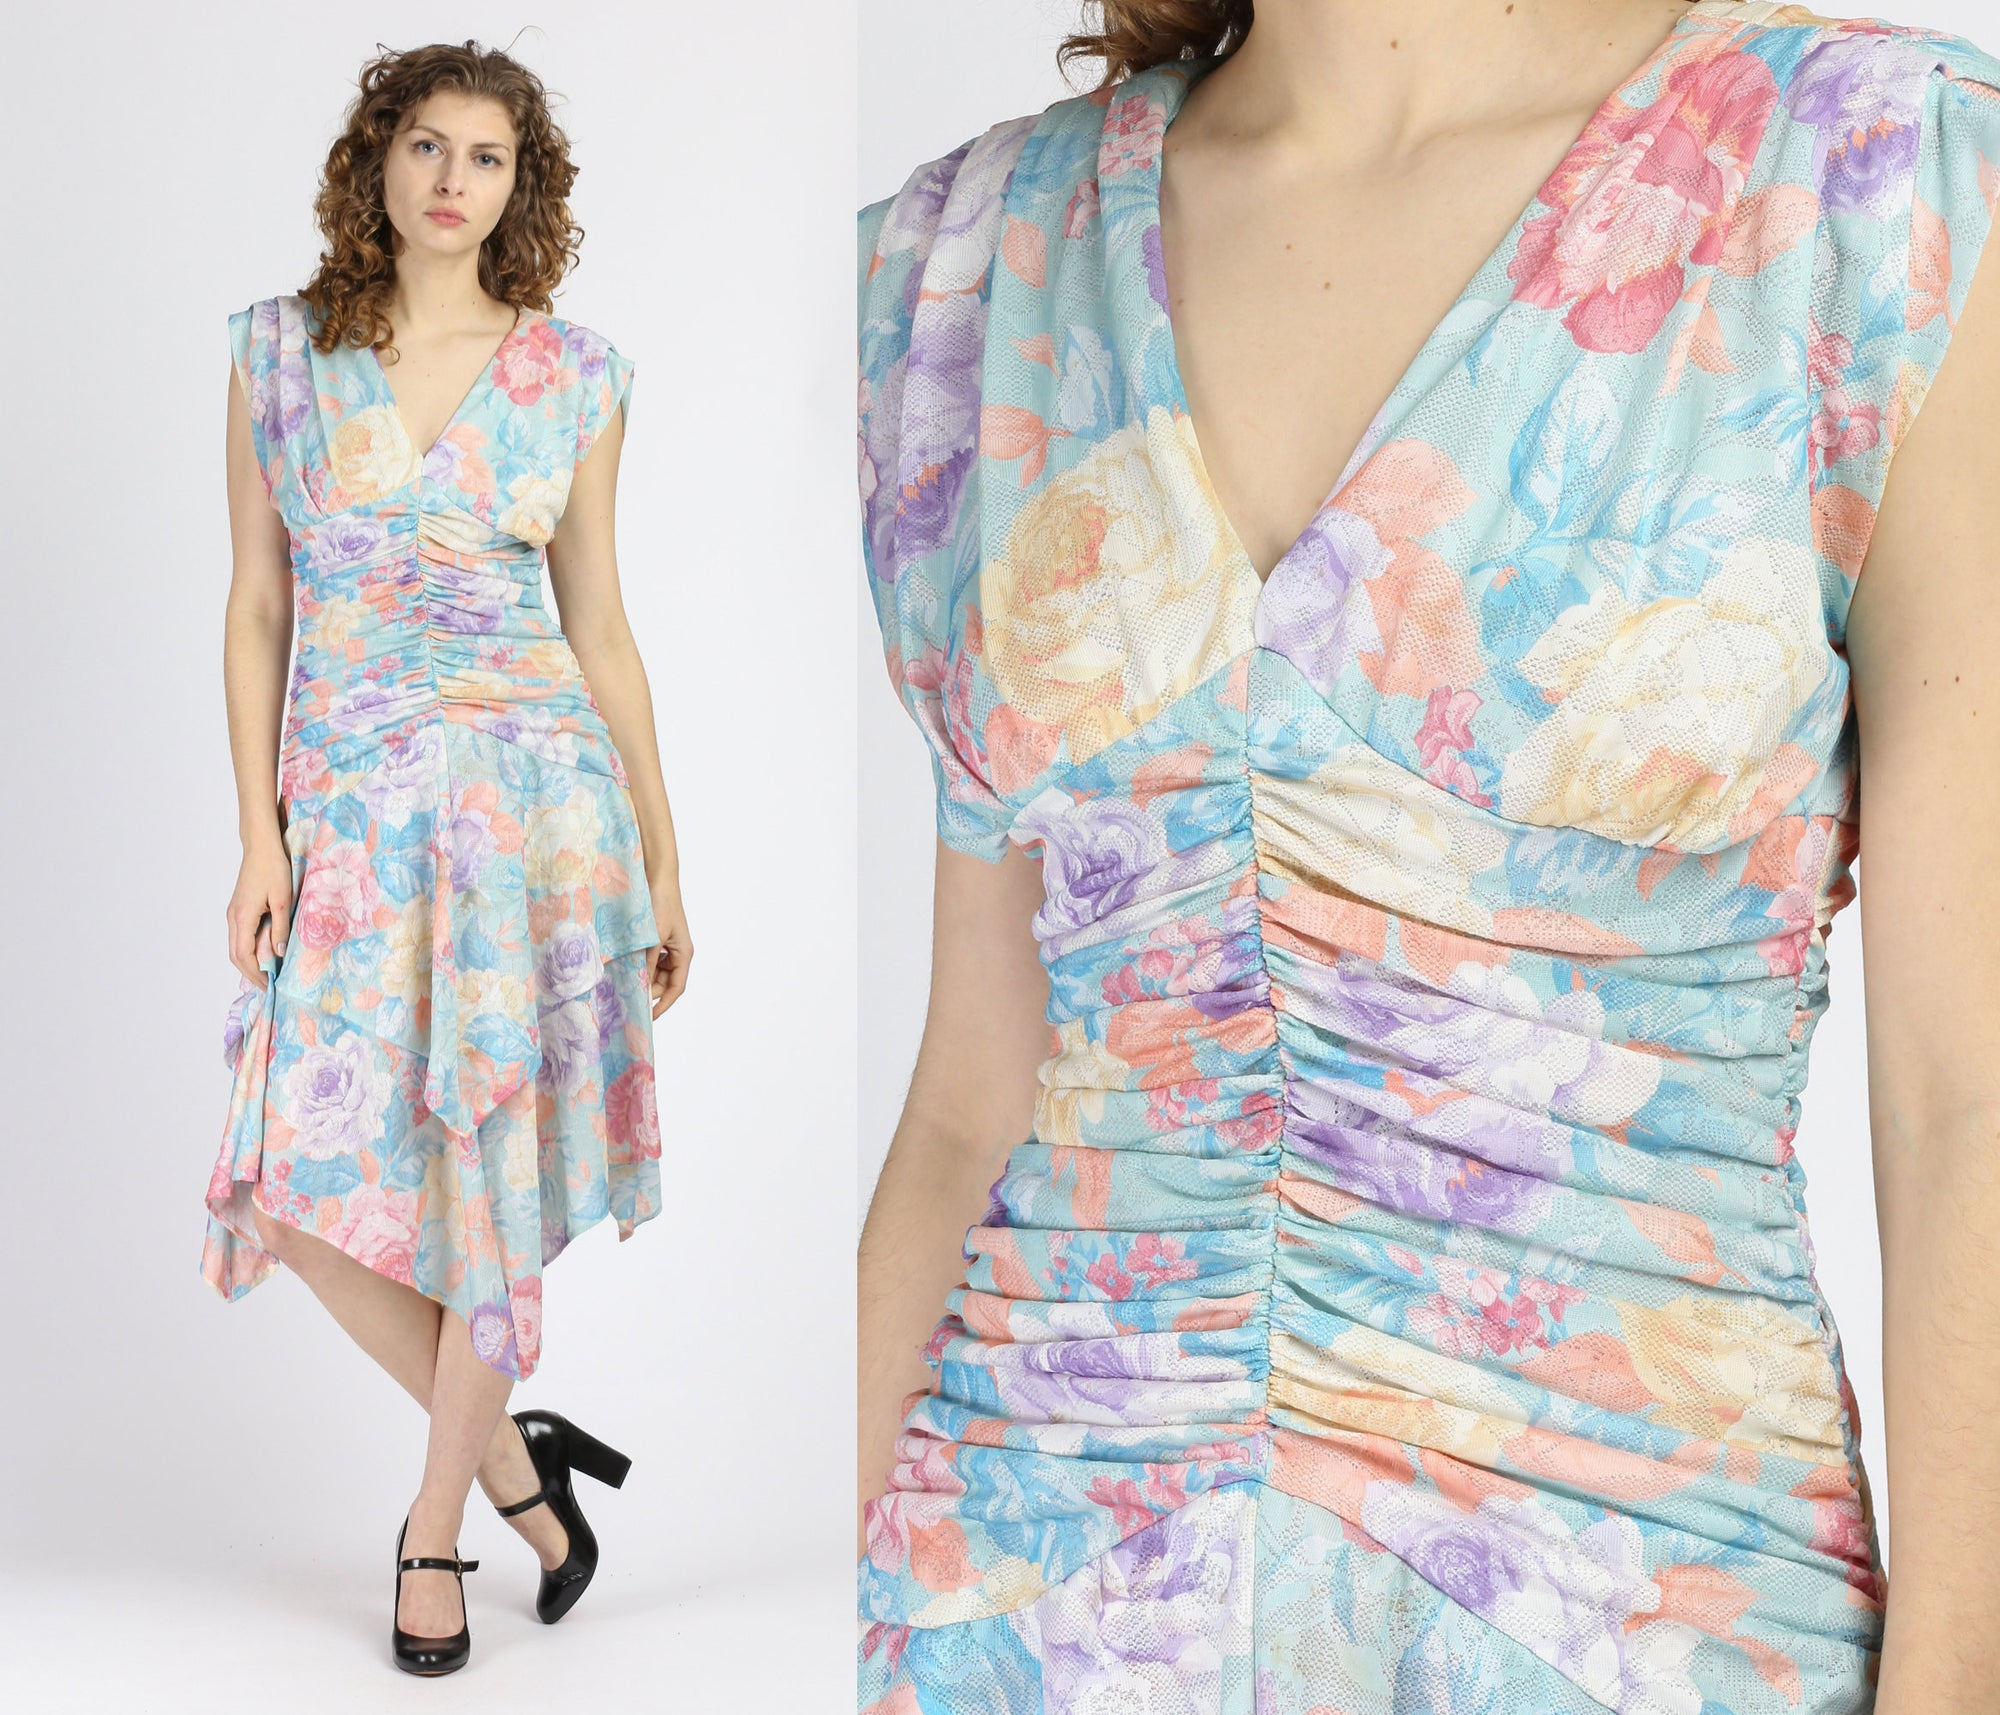 80s Pastel Floral Scarf Hem Dress - Medium